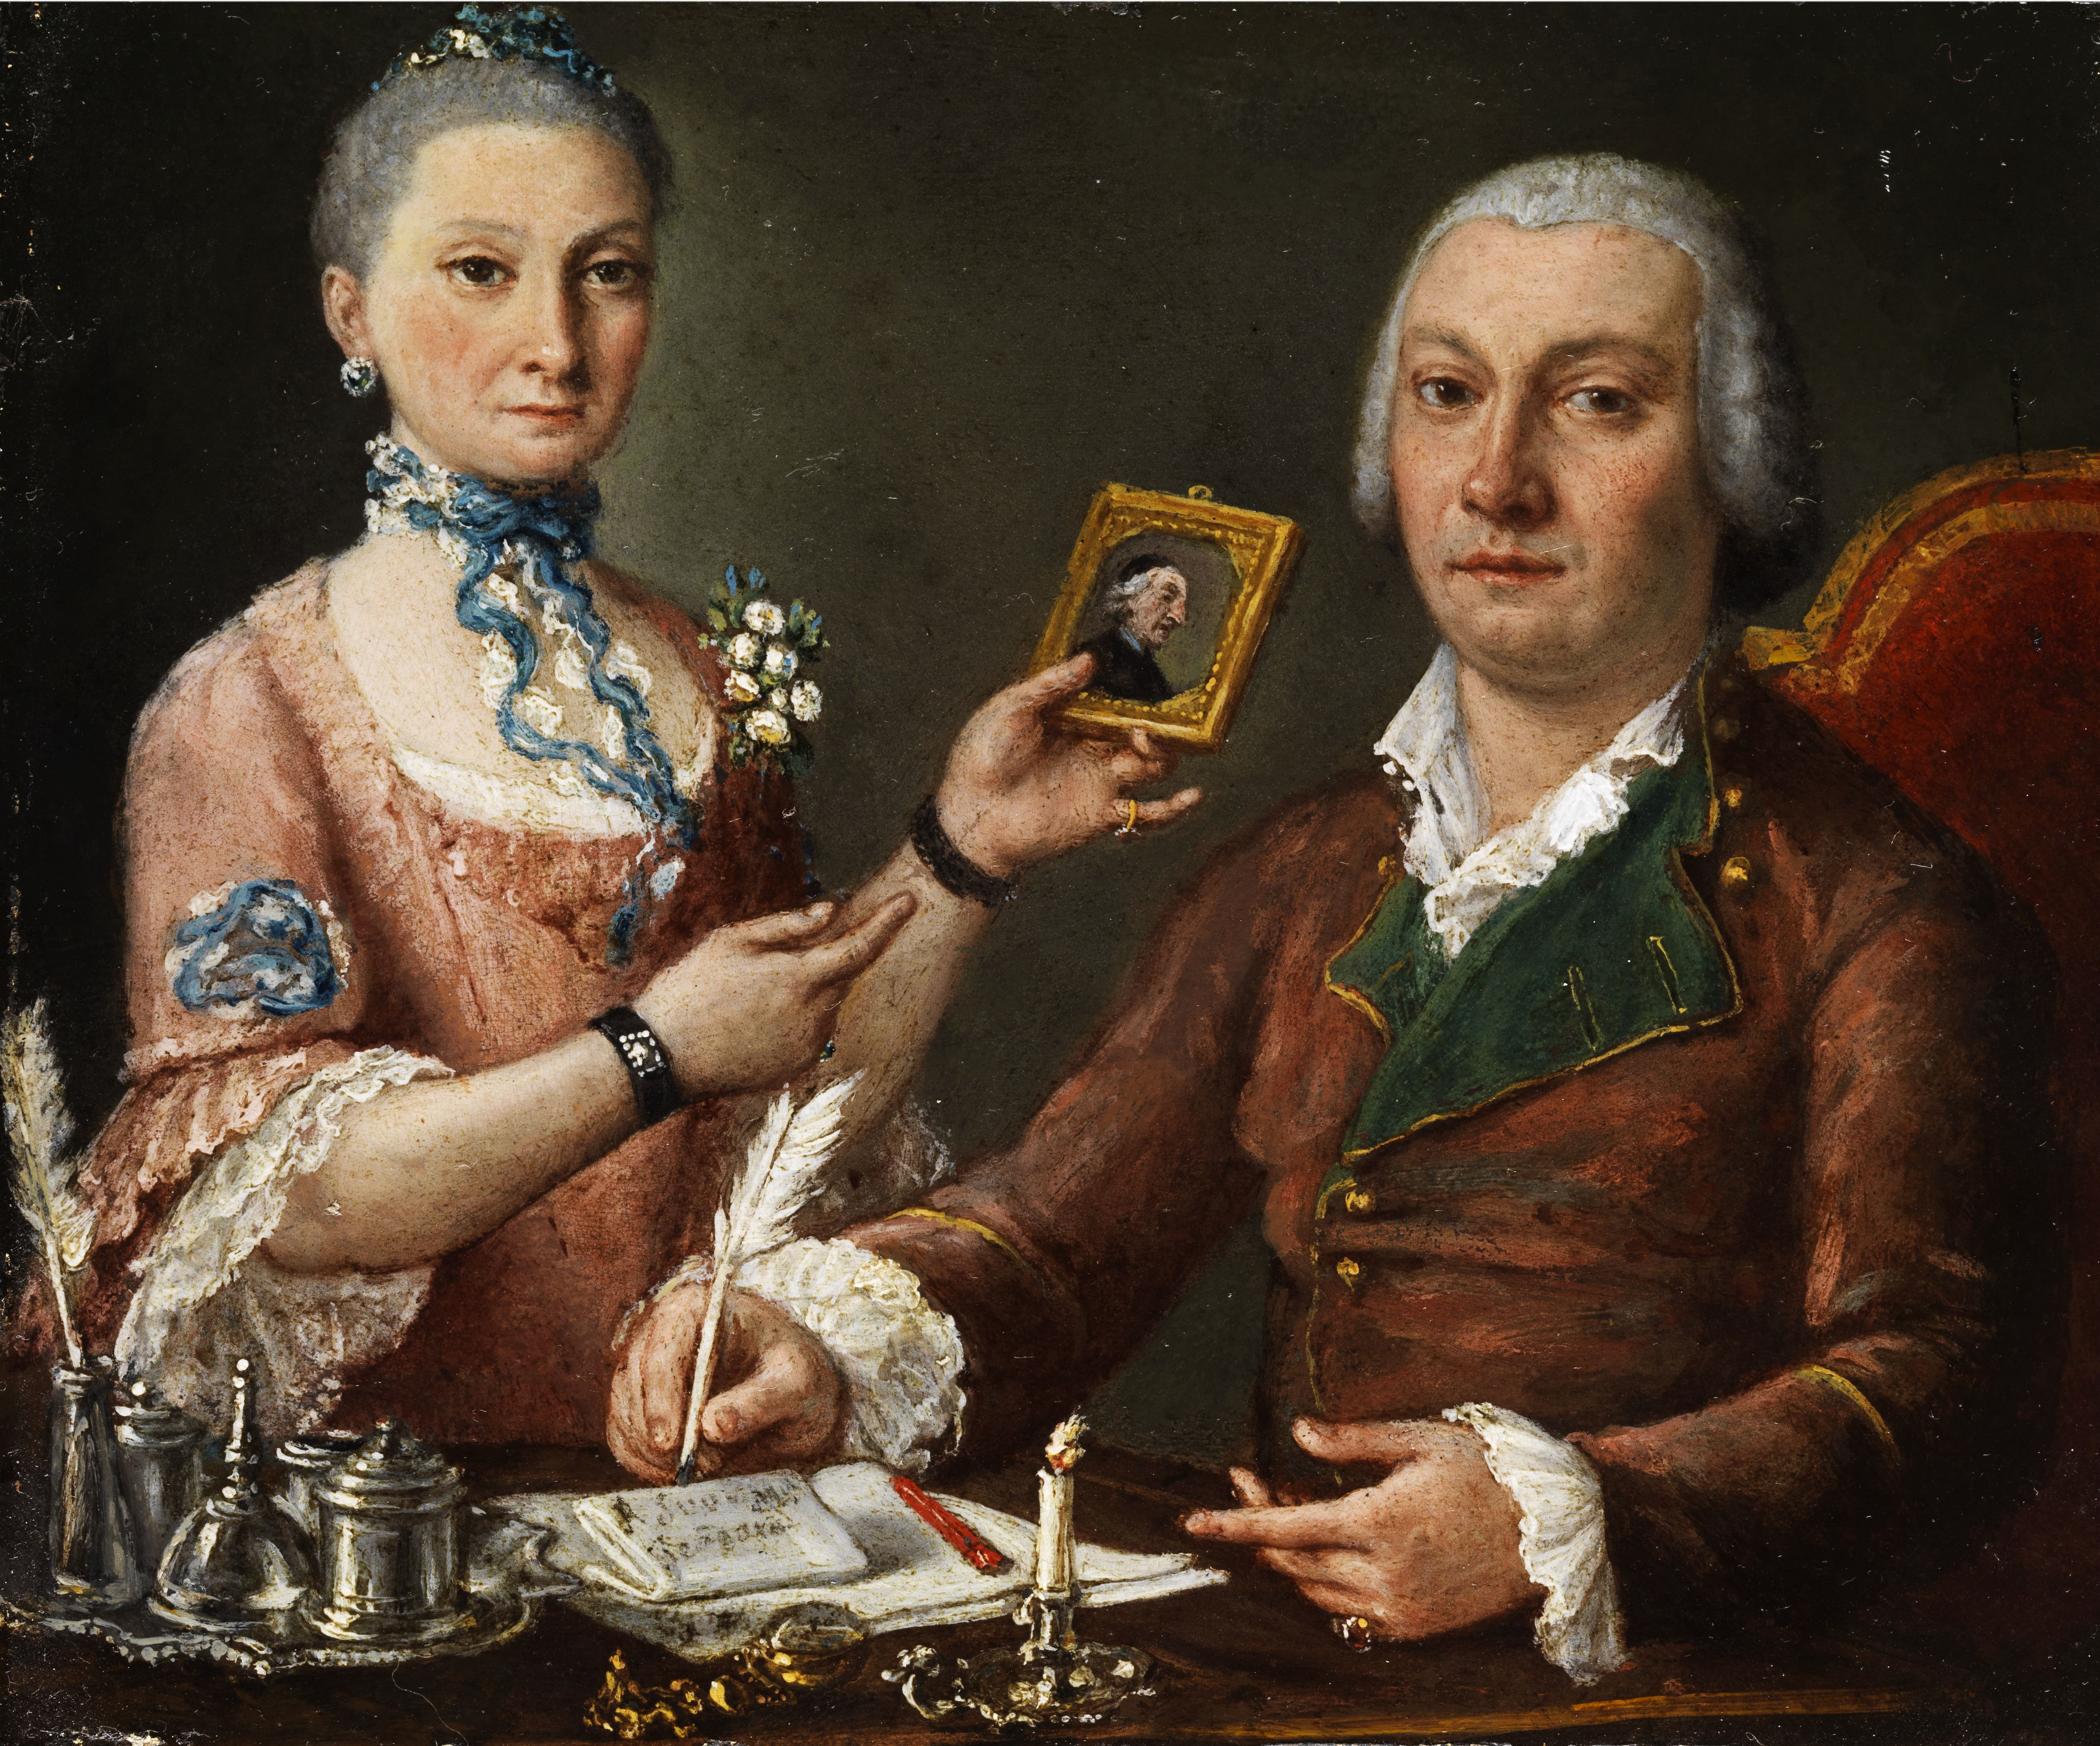 Couple Image In Painting